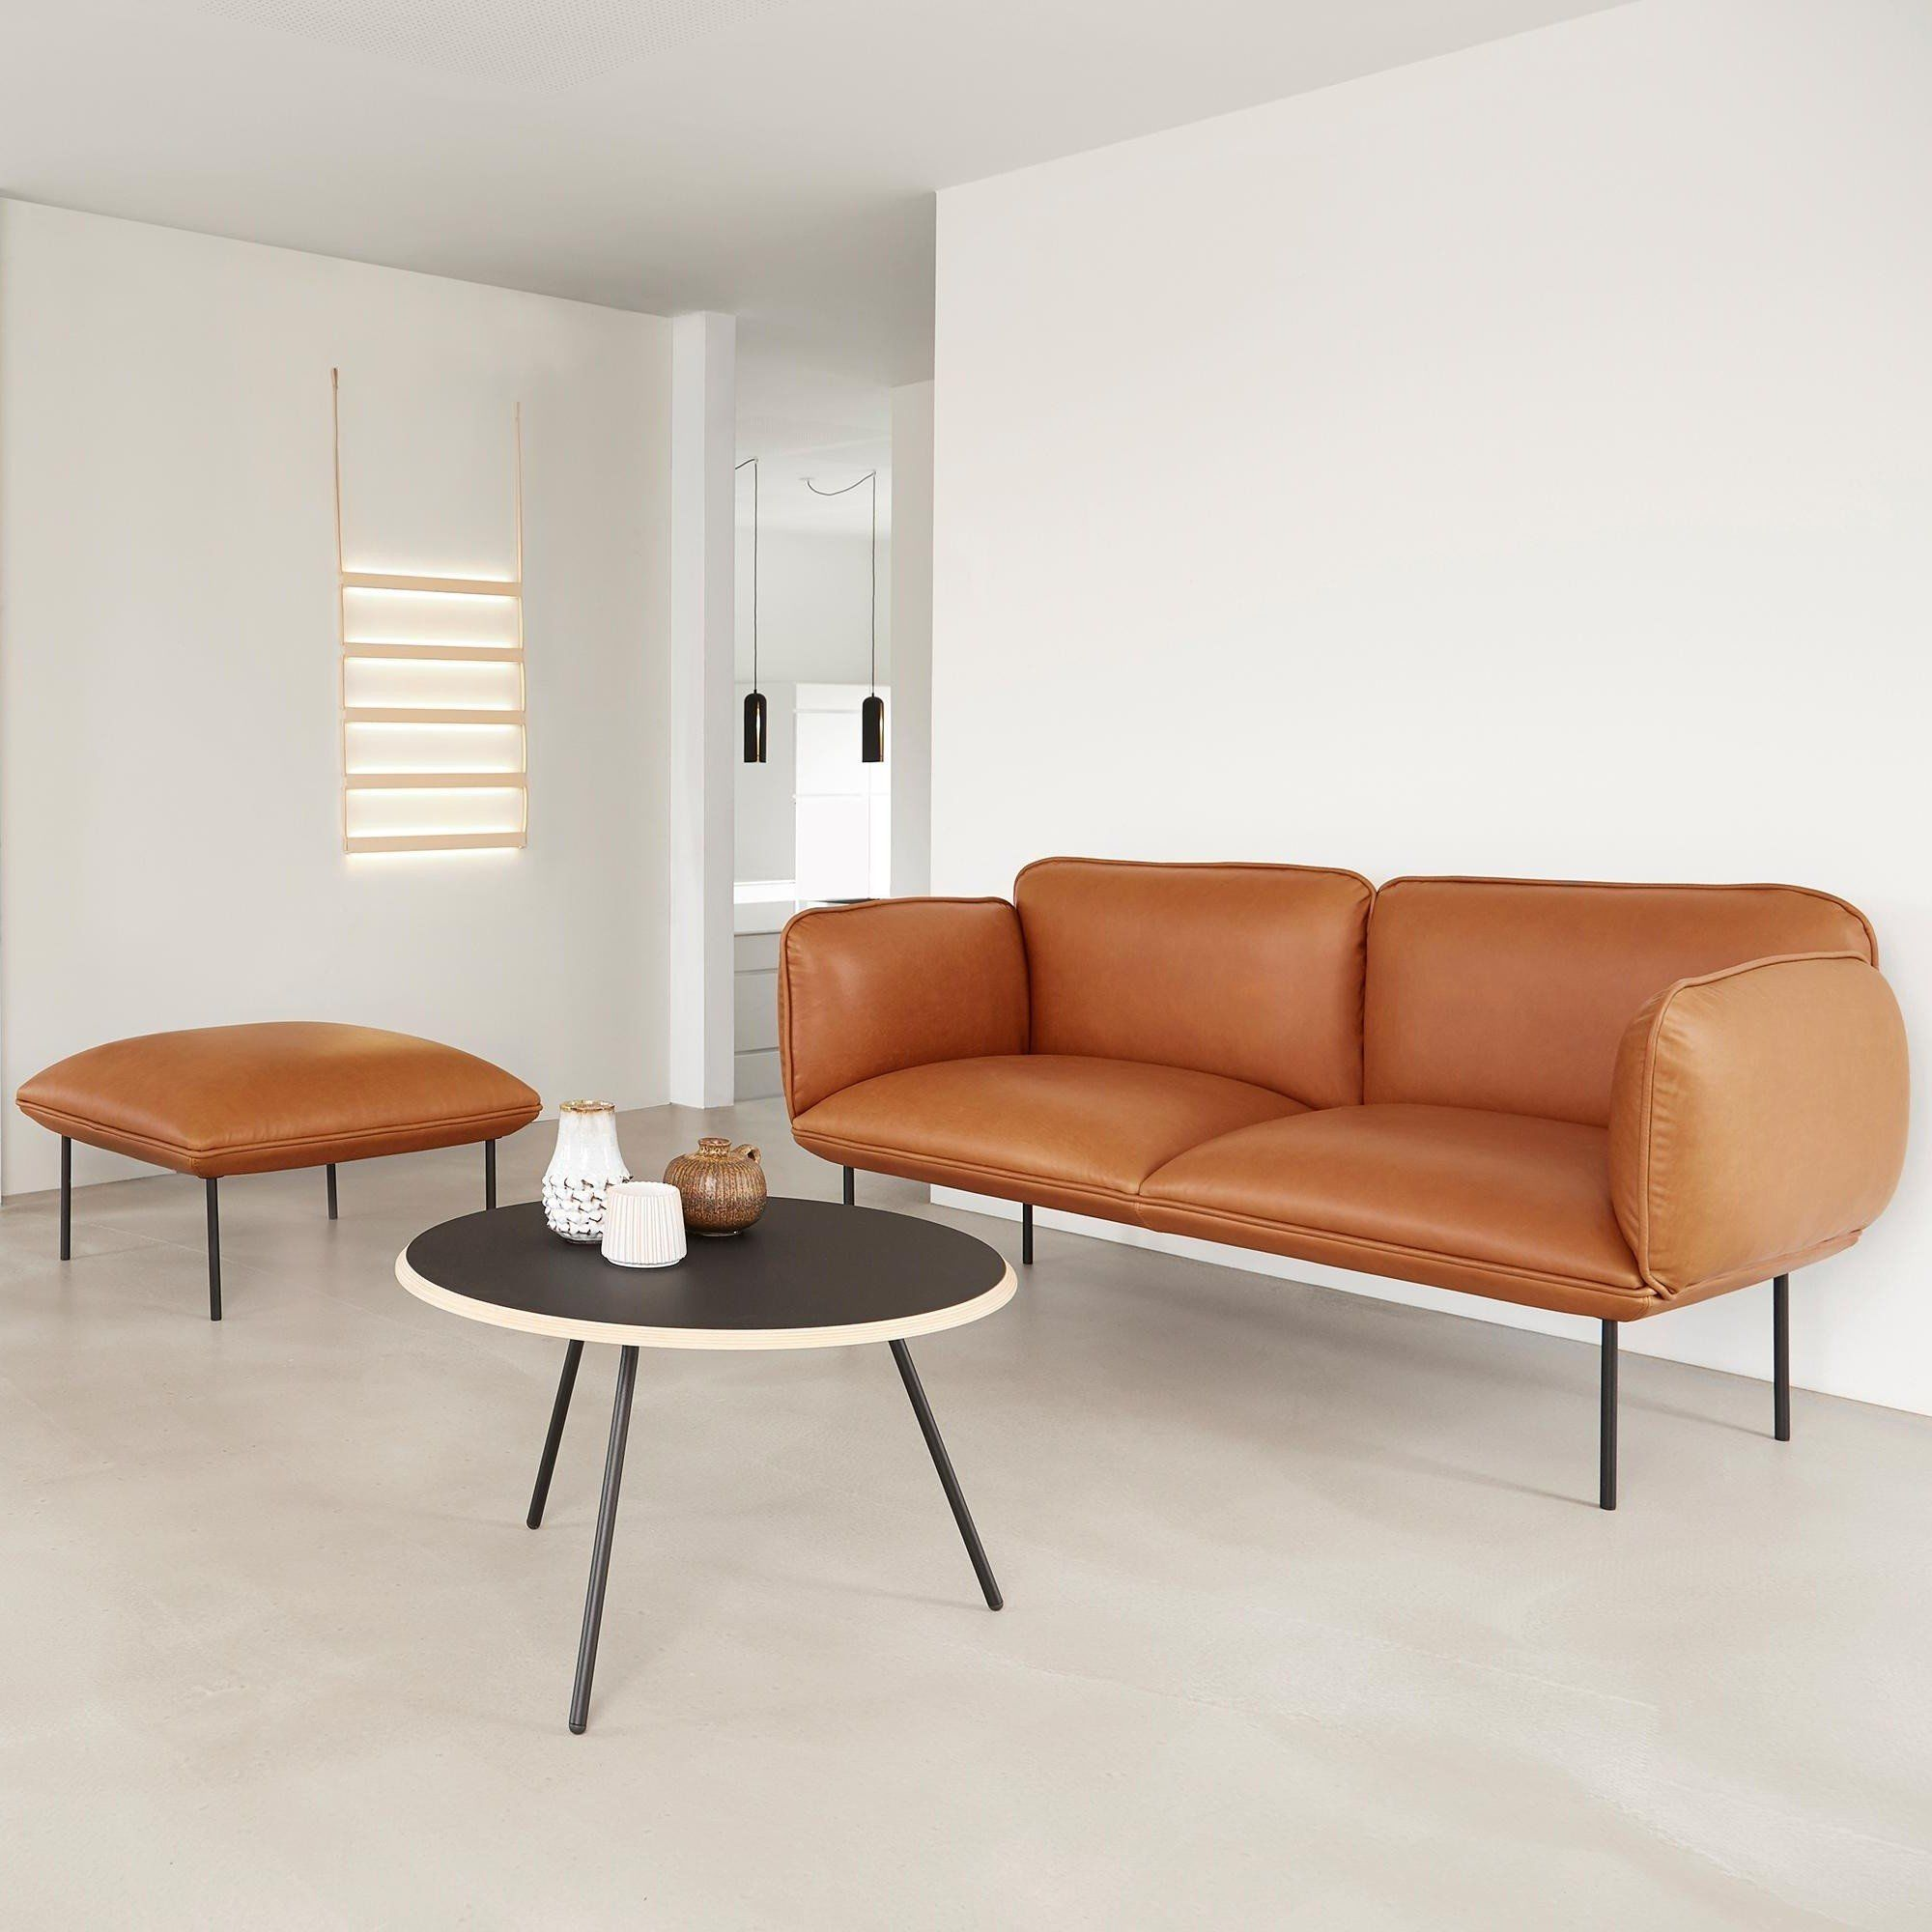 Types Of Reds Nakki 2 Seater Leather Sofa Woud Ambientedirect Com